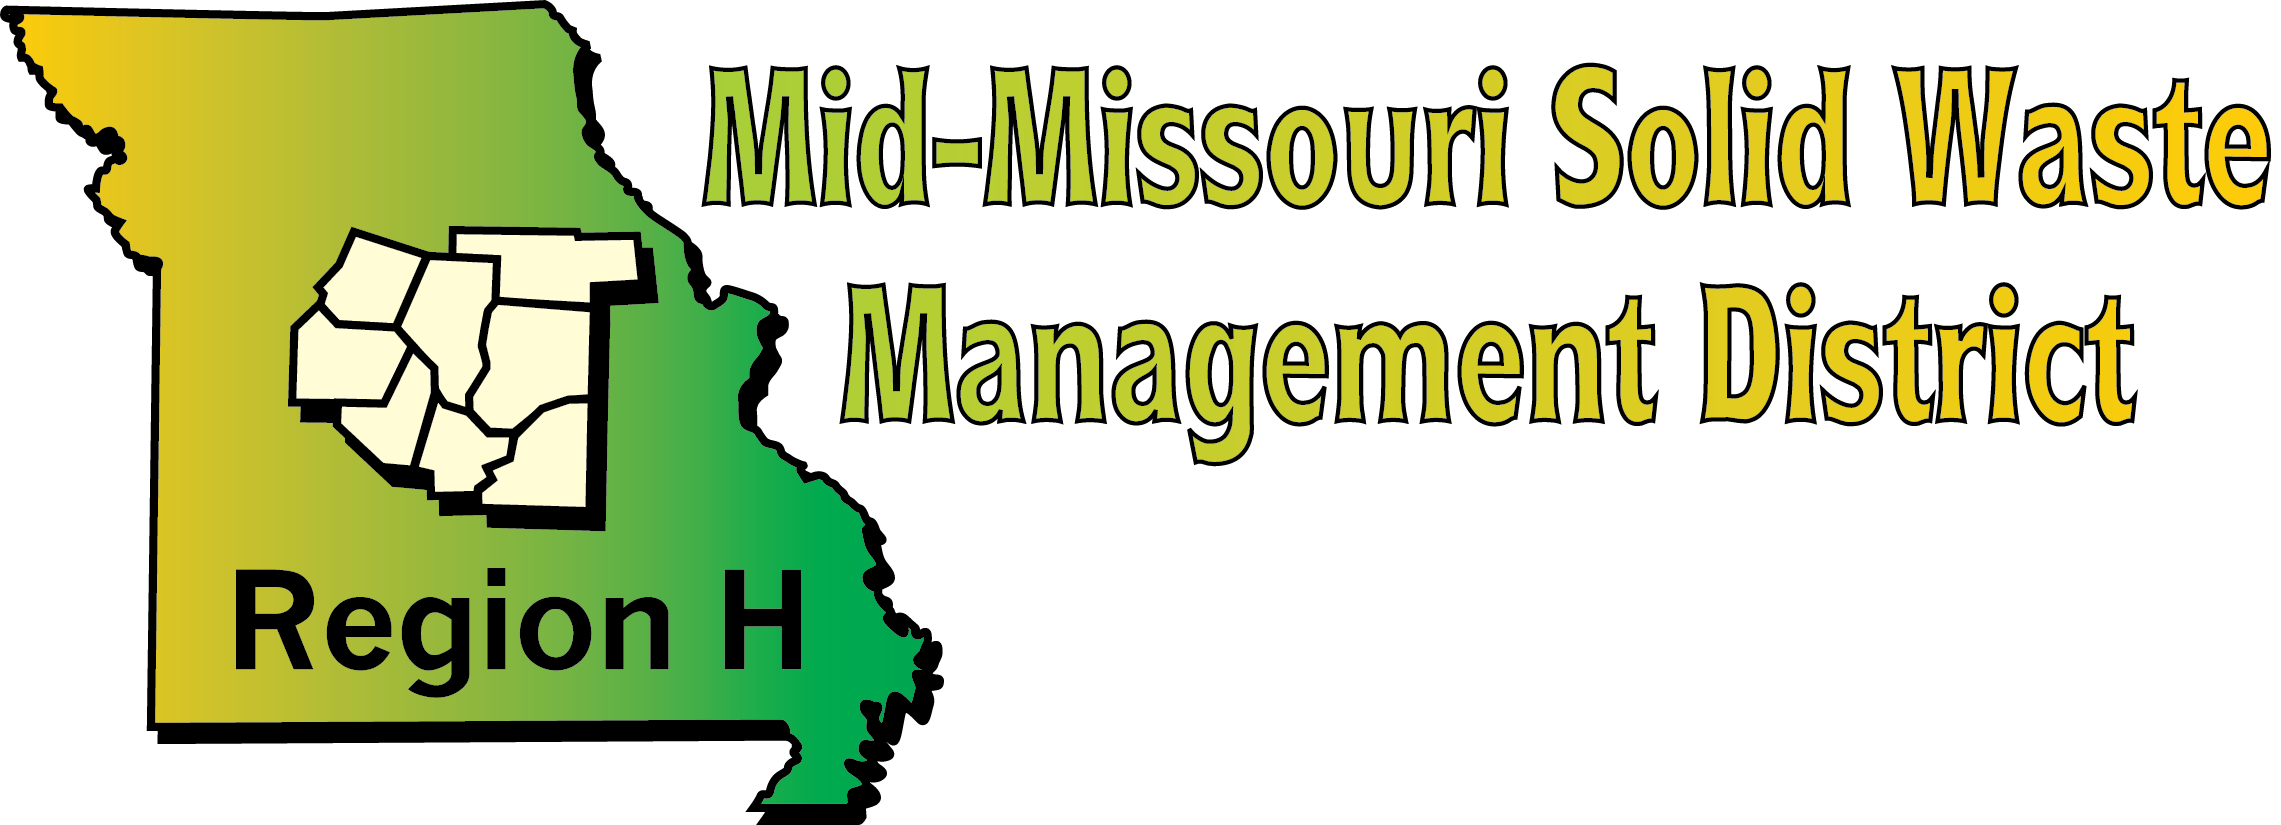 Mid Missouri Solid Waste Management District